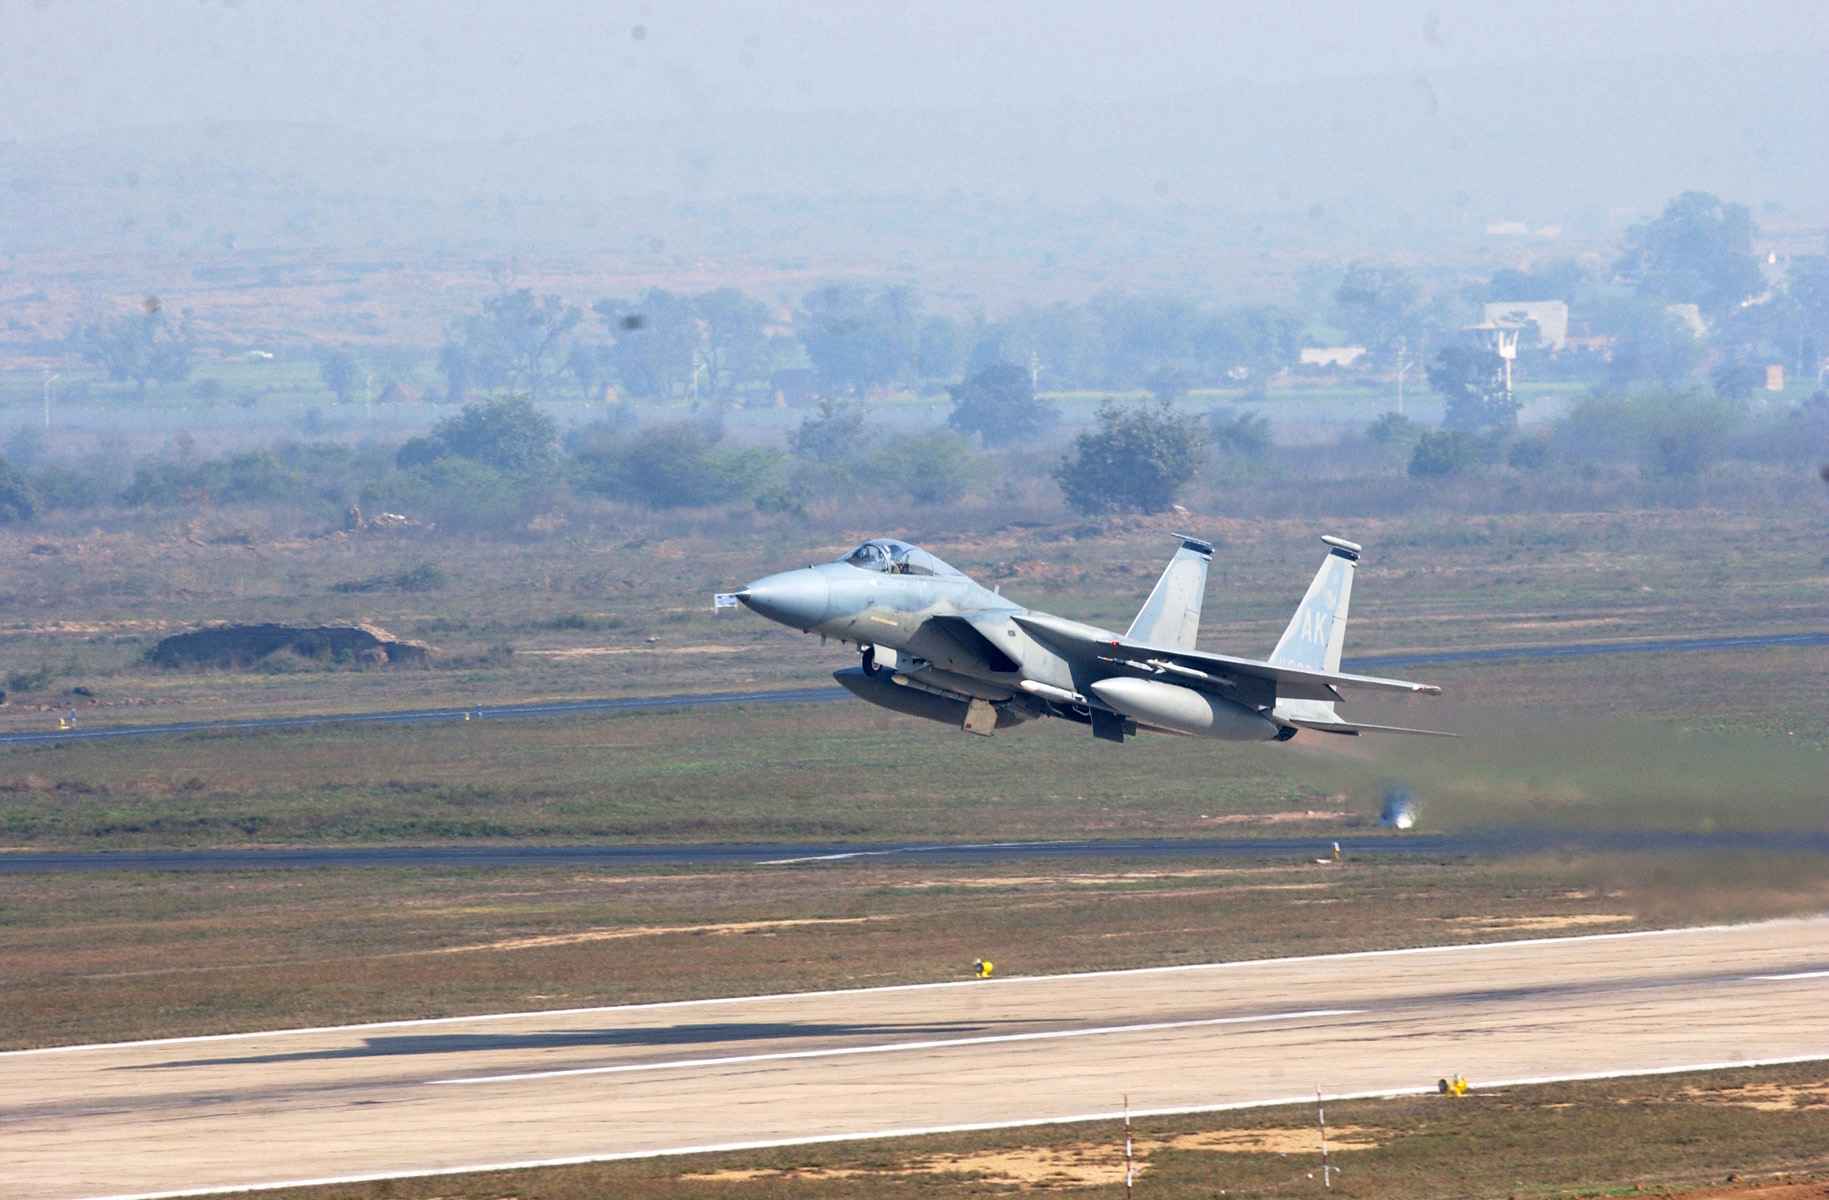 air-force-chief-visits-leh-to-oversee-operations-in-ladakh-india-china-border-clash